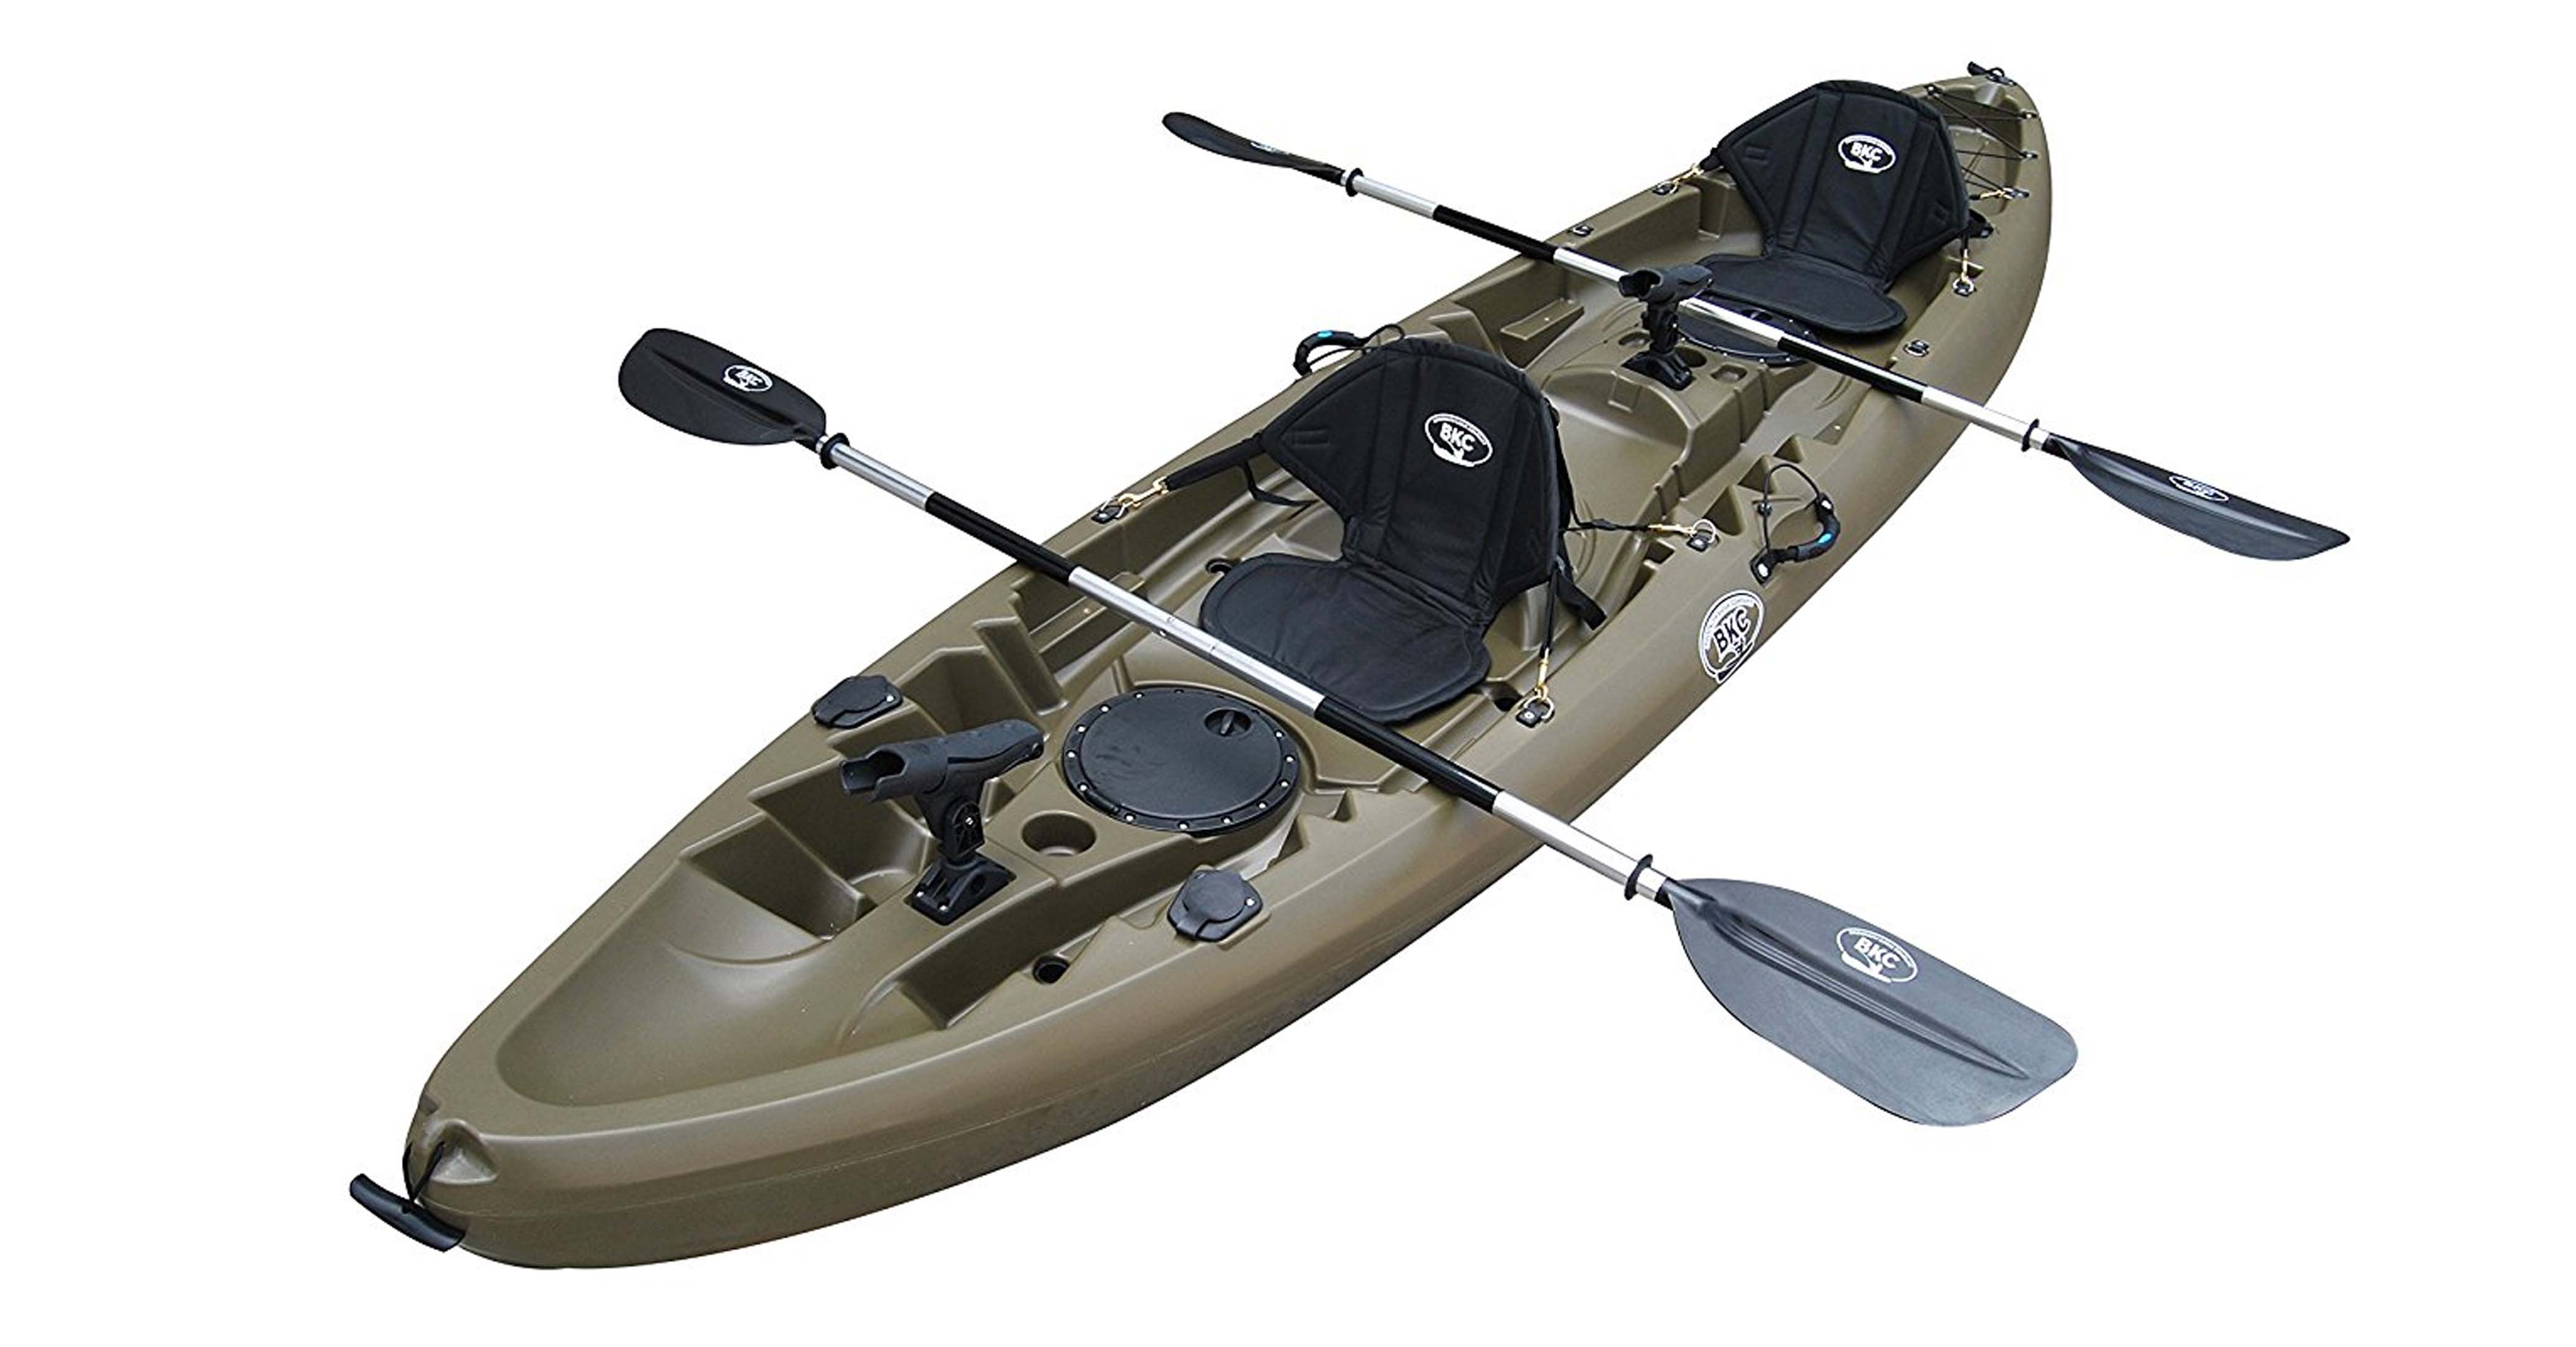 BKC UH-TK219 12-Foot Tandem Sit on Top Kayak